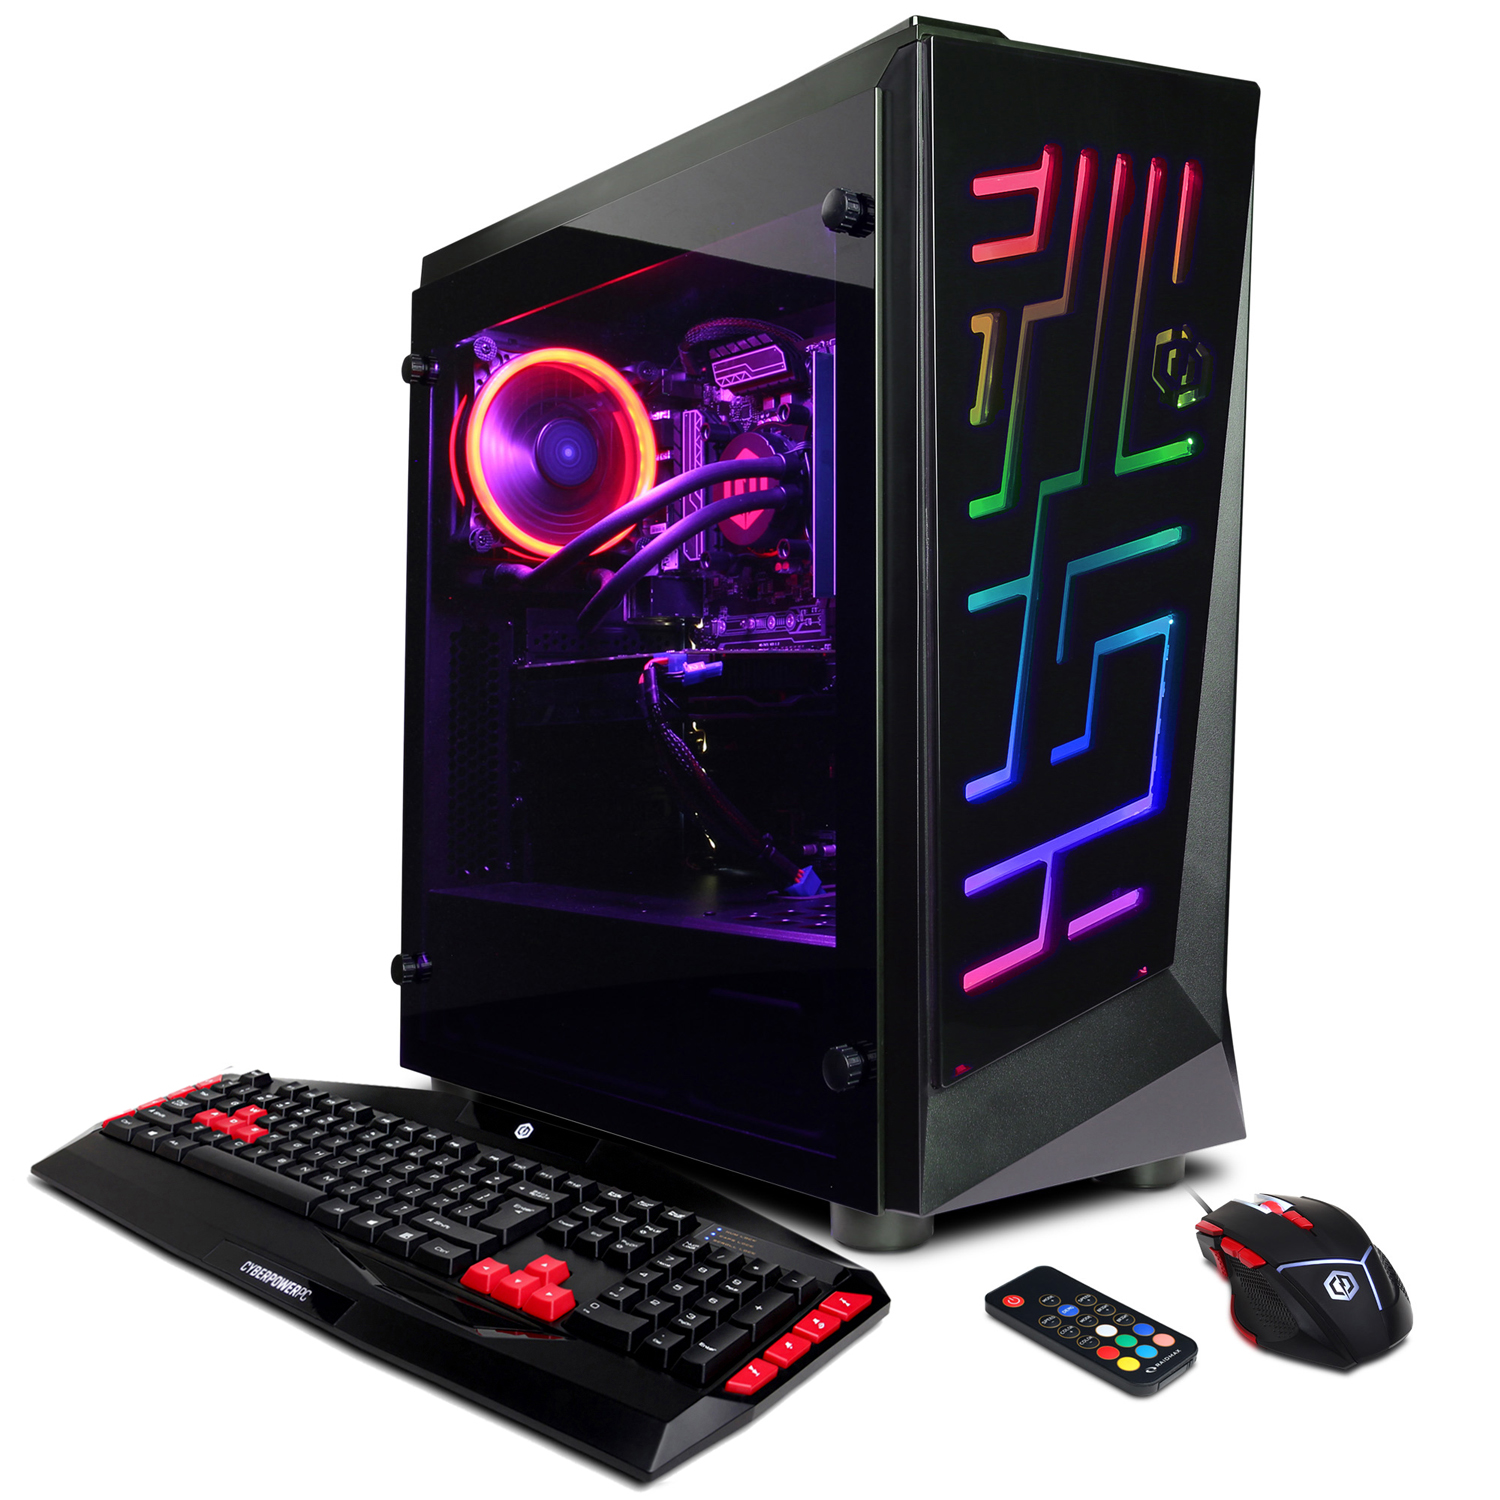 CYBERPOWERPC Gamer Xtreme VR GXiVR3000CPG w/ Liquid Cooled Intel i7-8700, Nvidia GeForce GTX 1070 8GB, 16GB Memory, 2TB Hard Drive and Windows 10 Home 64-Bit Gaming PC